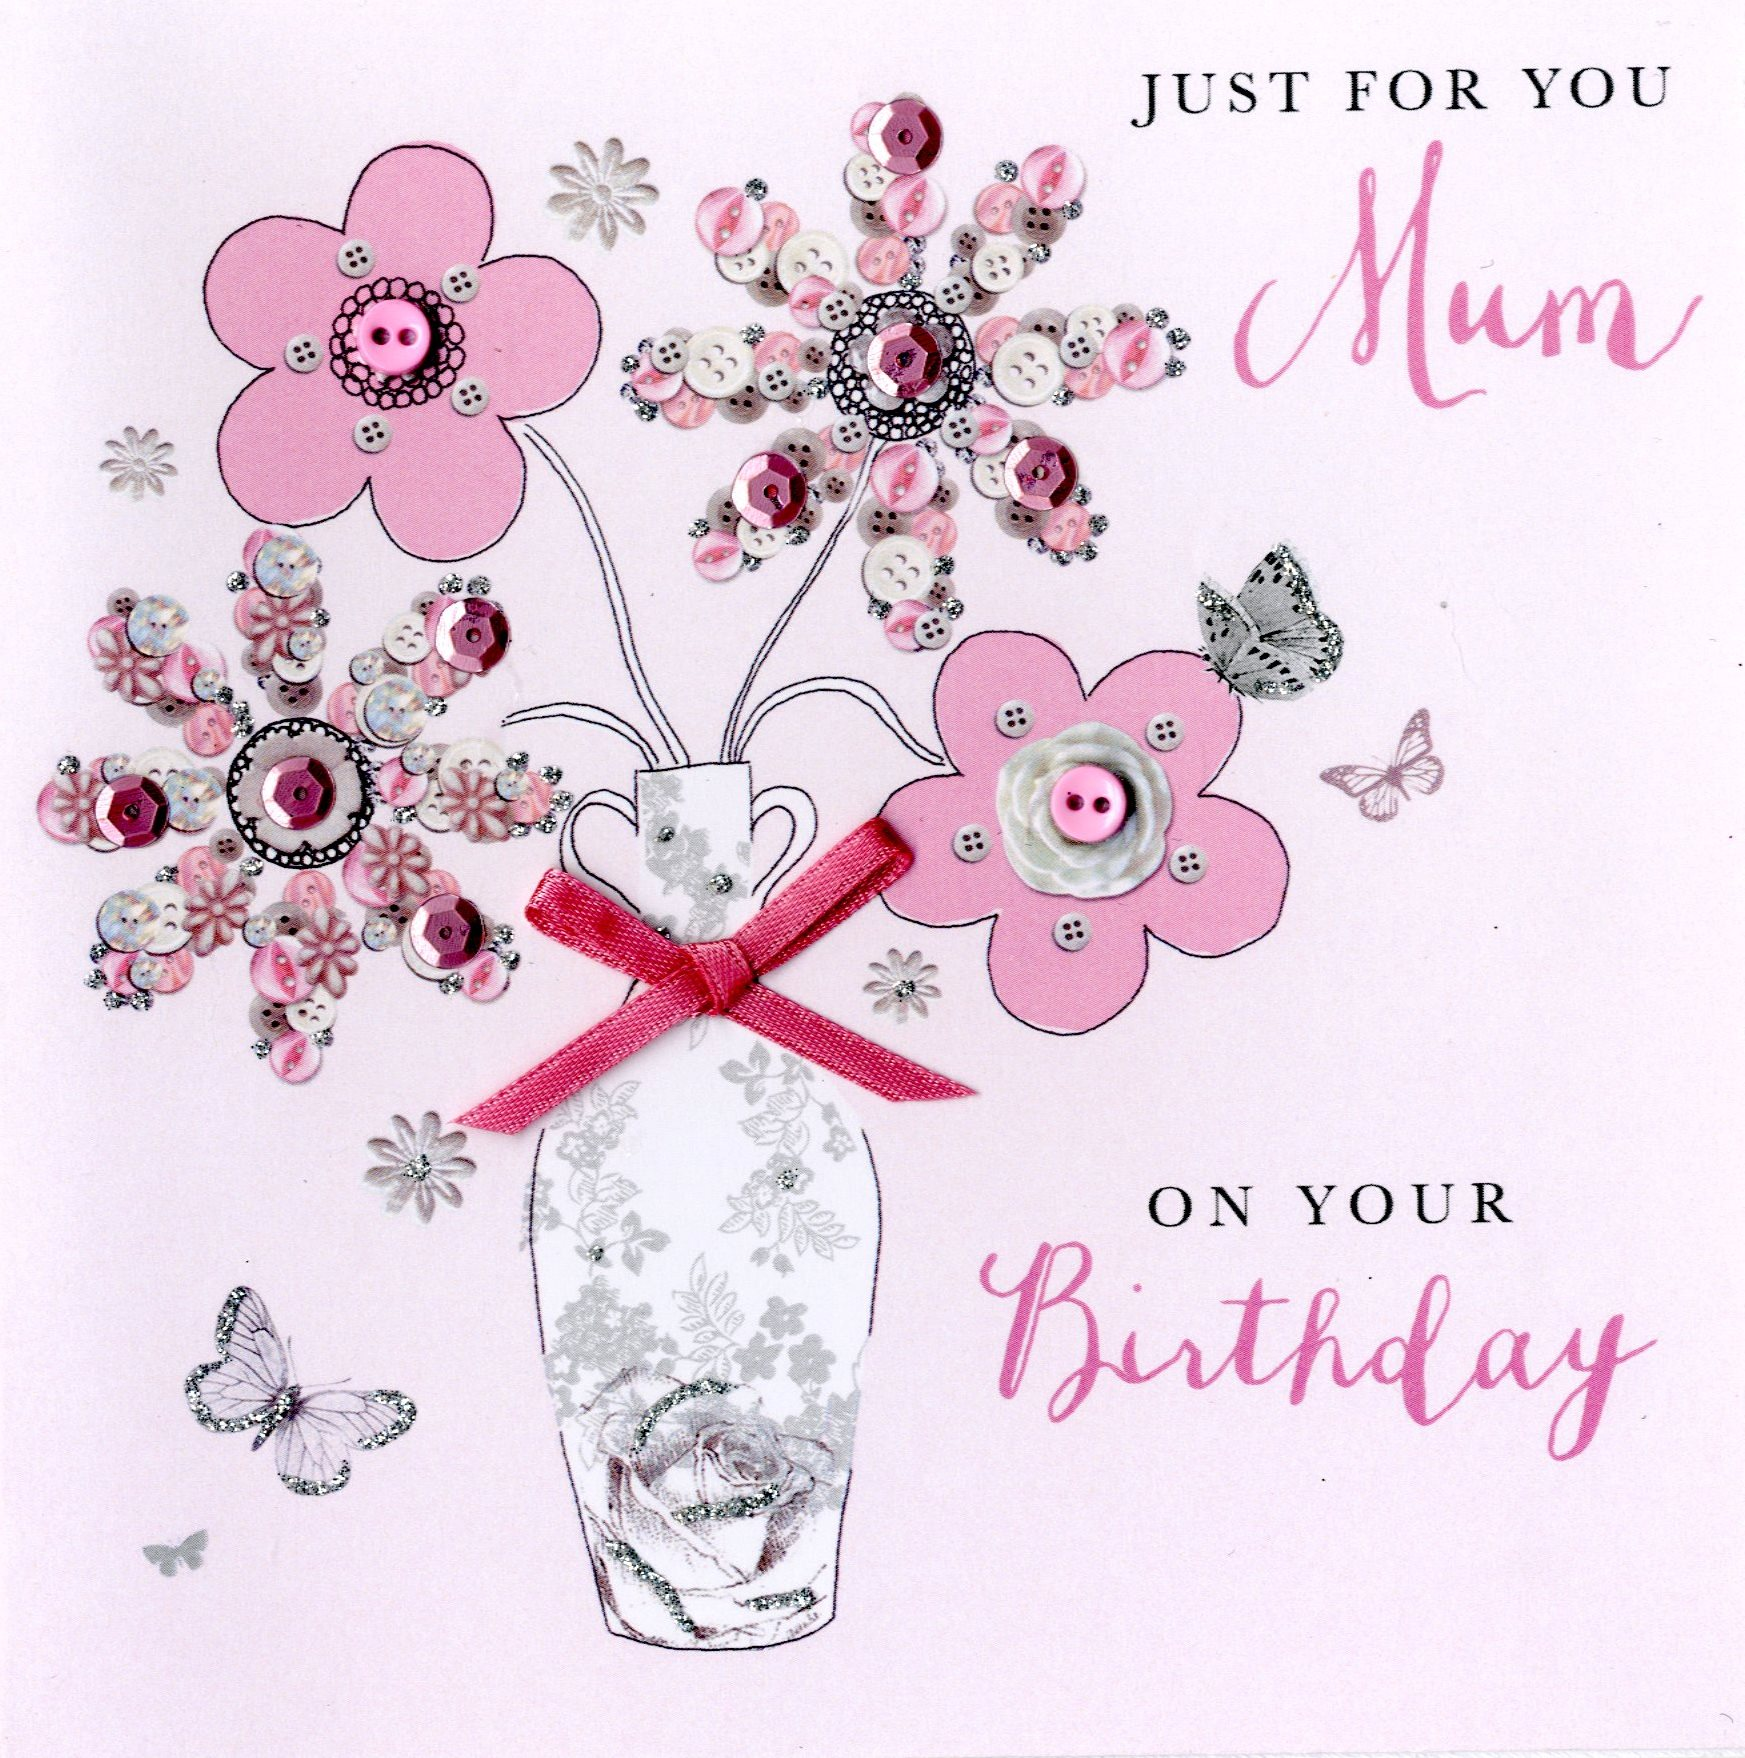 Just for you mum birthday buttoned up greeting card cards love kates just for you mum birthday buttoned up greeting card m4hsunfo